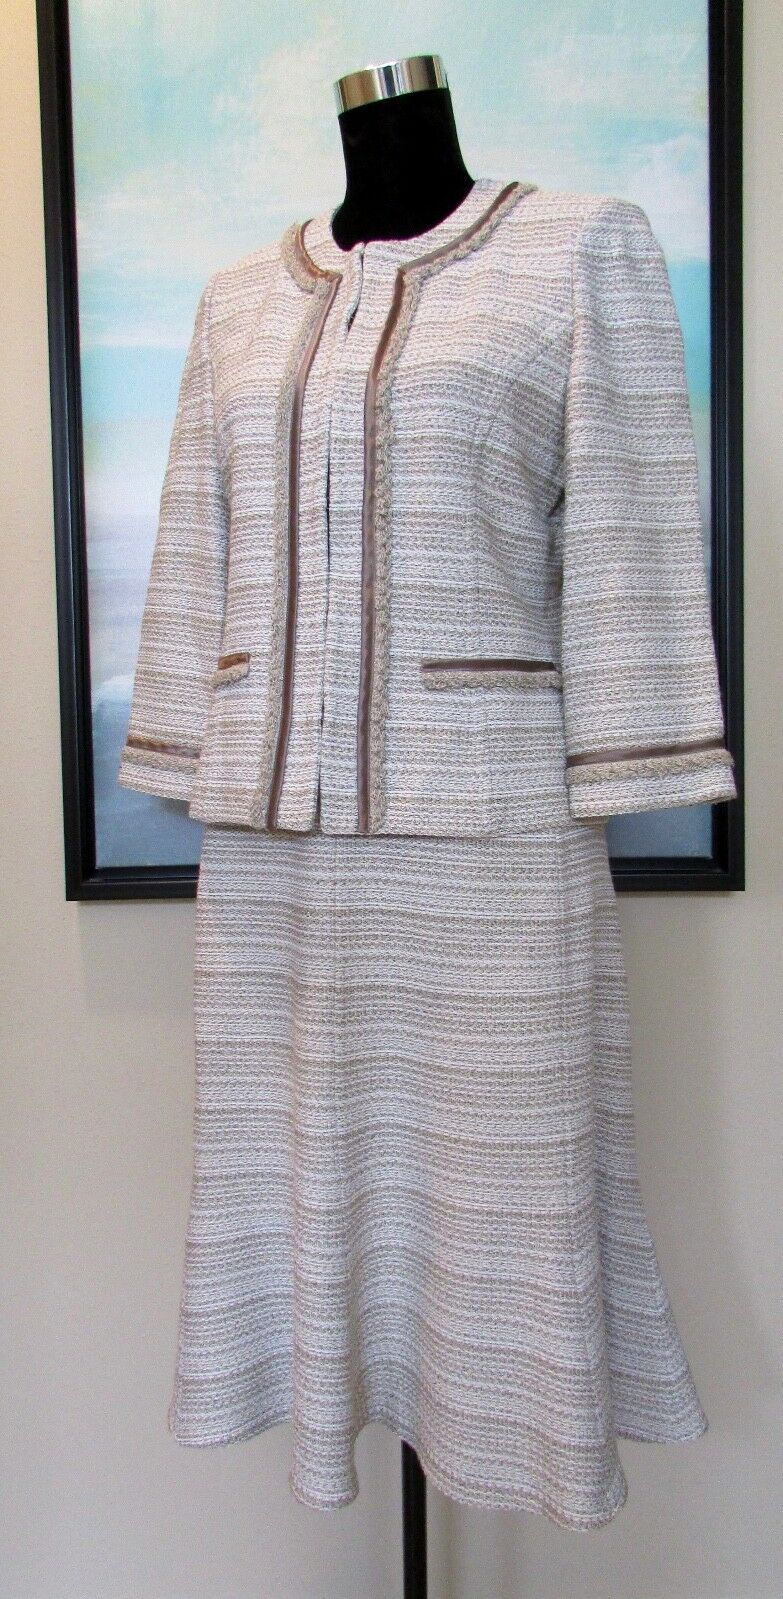 ST. JOHN Collection Boucle Knit Taupe Cream Skirt Suit Sz 8 12